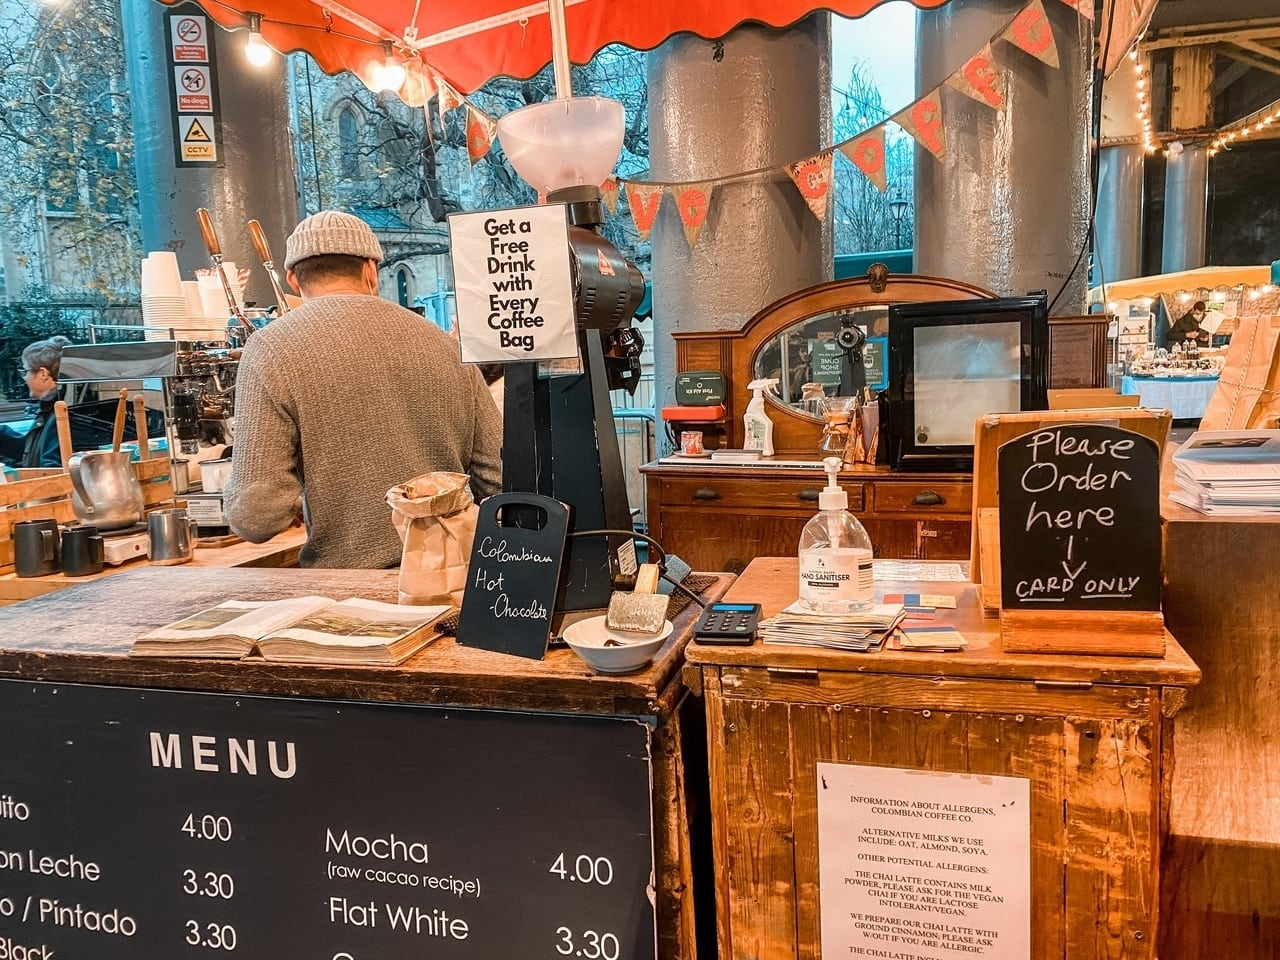 Where to find the best coffee near borough market in London